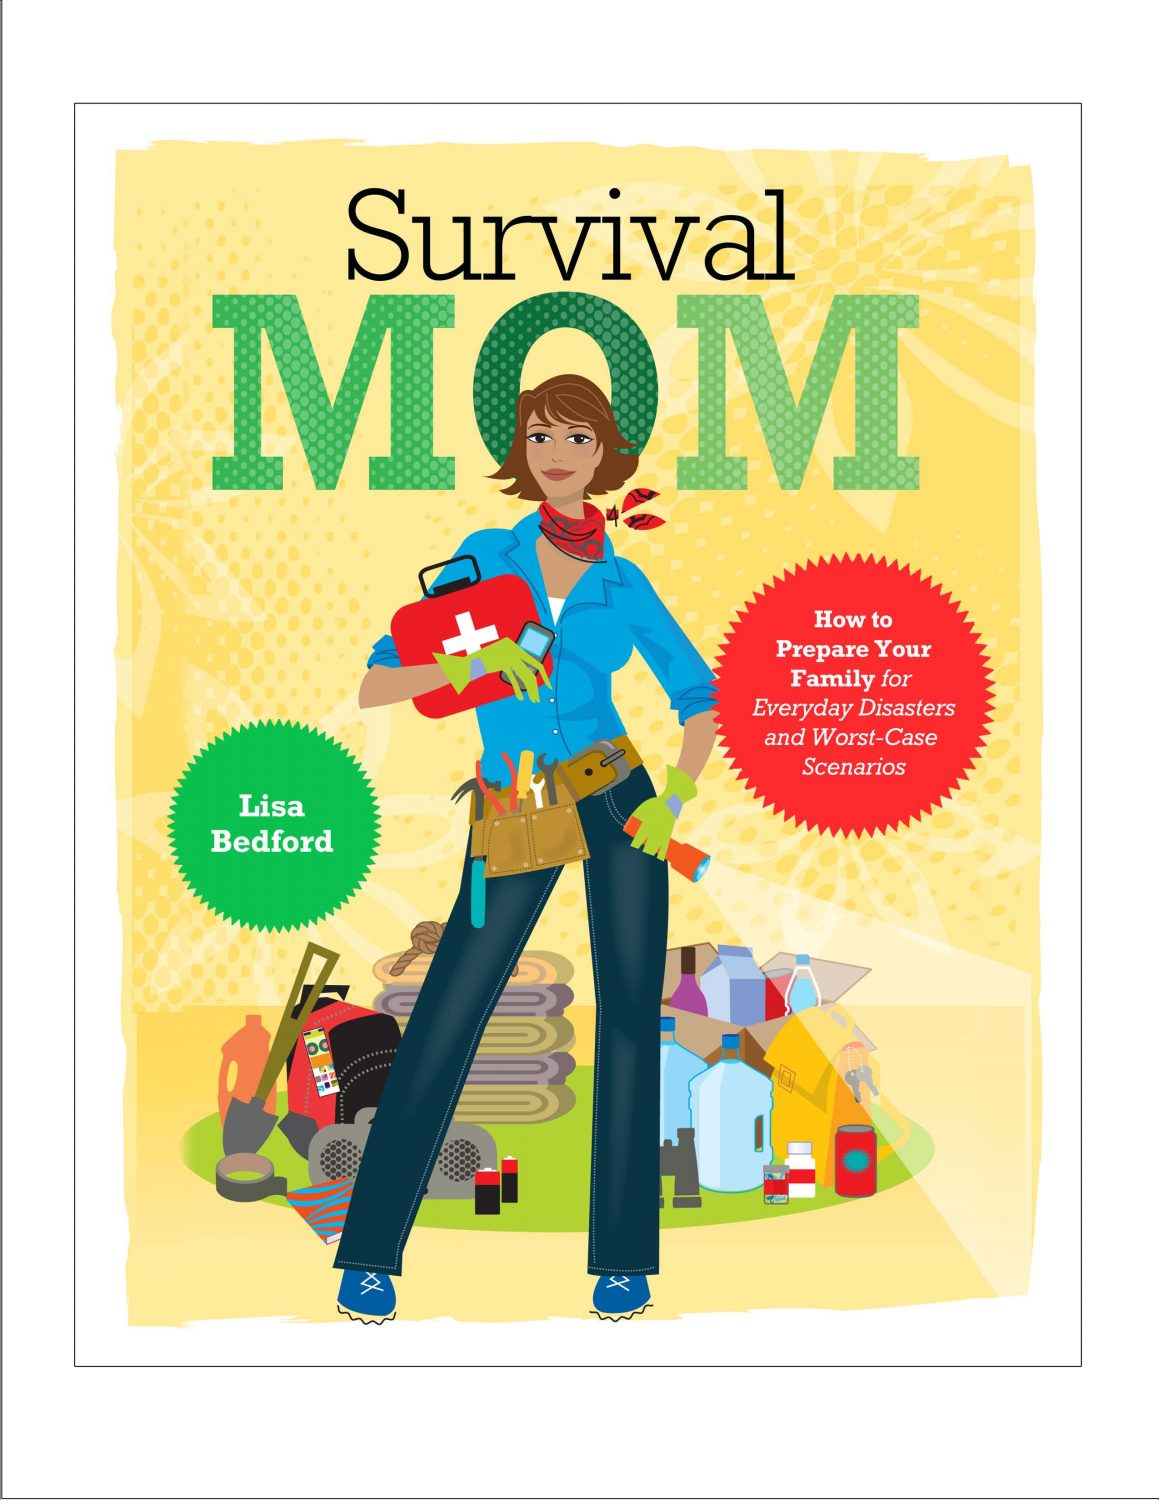 Win your very own Personalized & Signed Copies of Survival Mom!